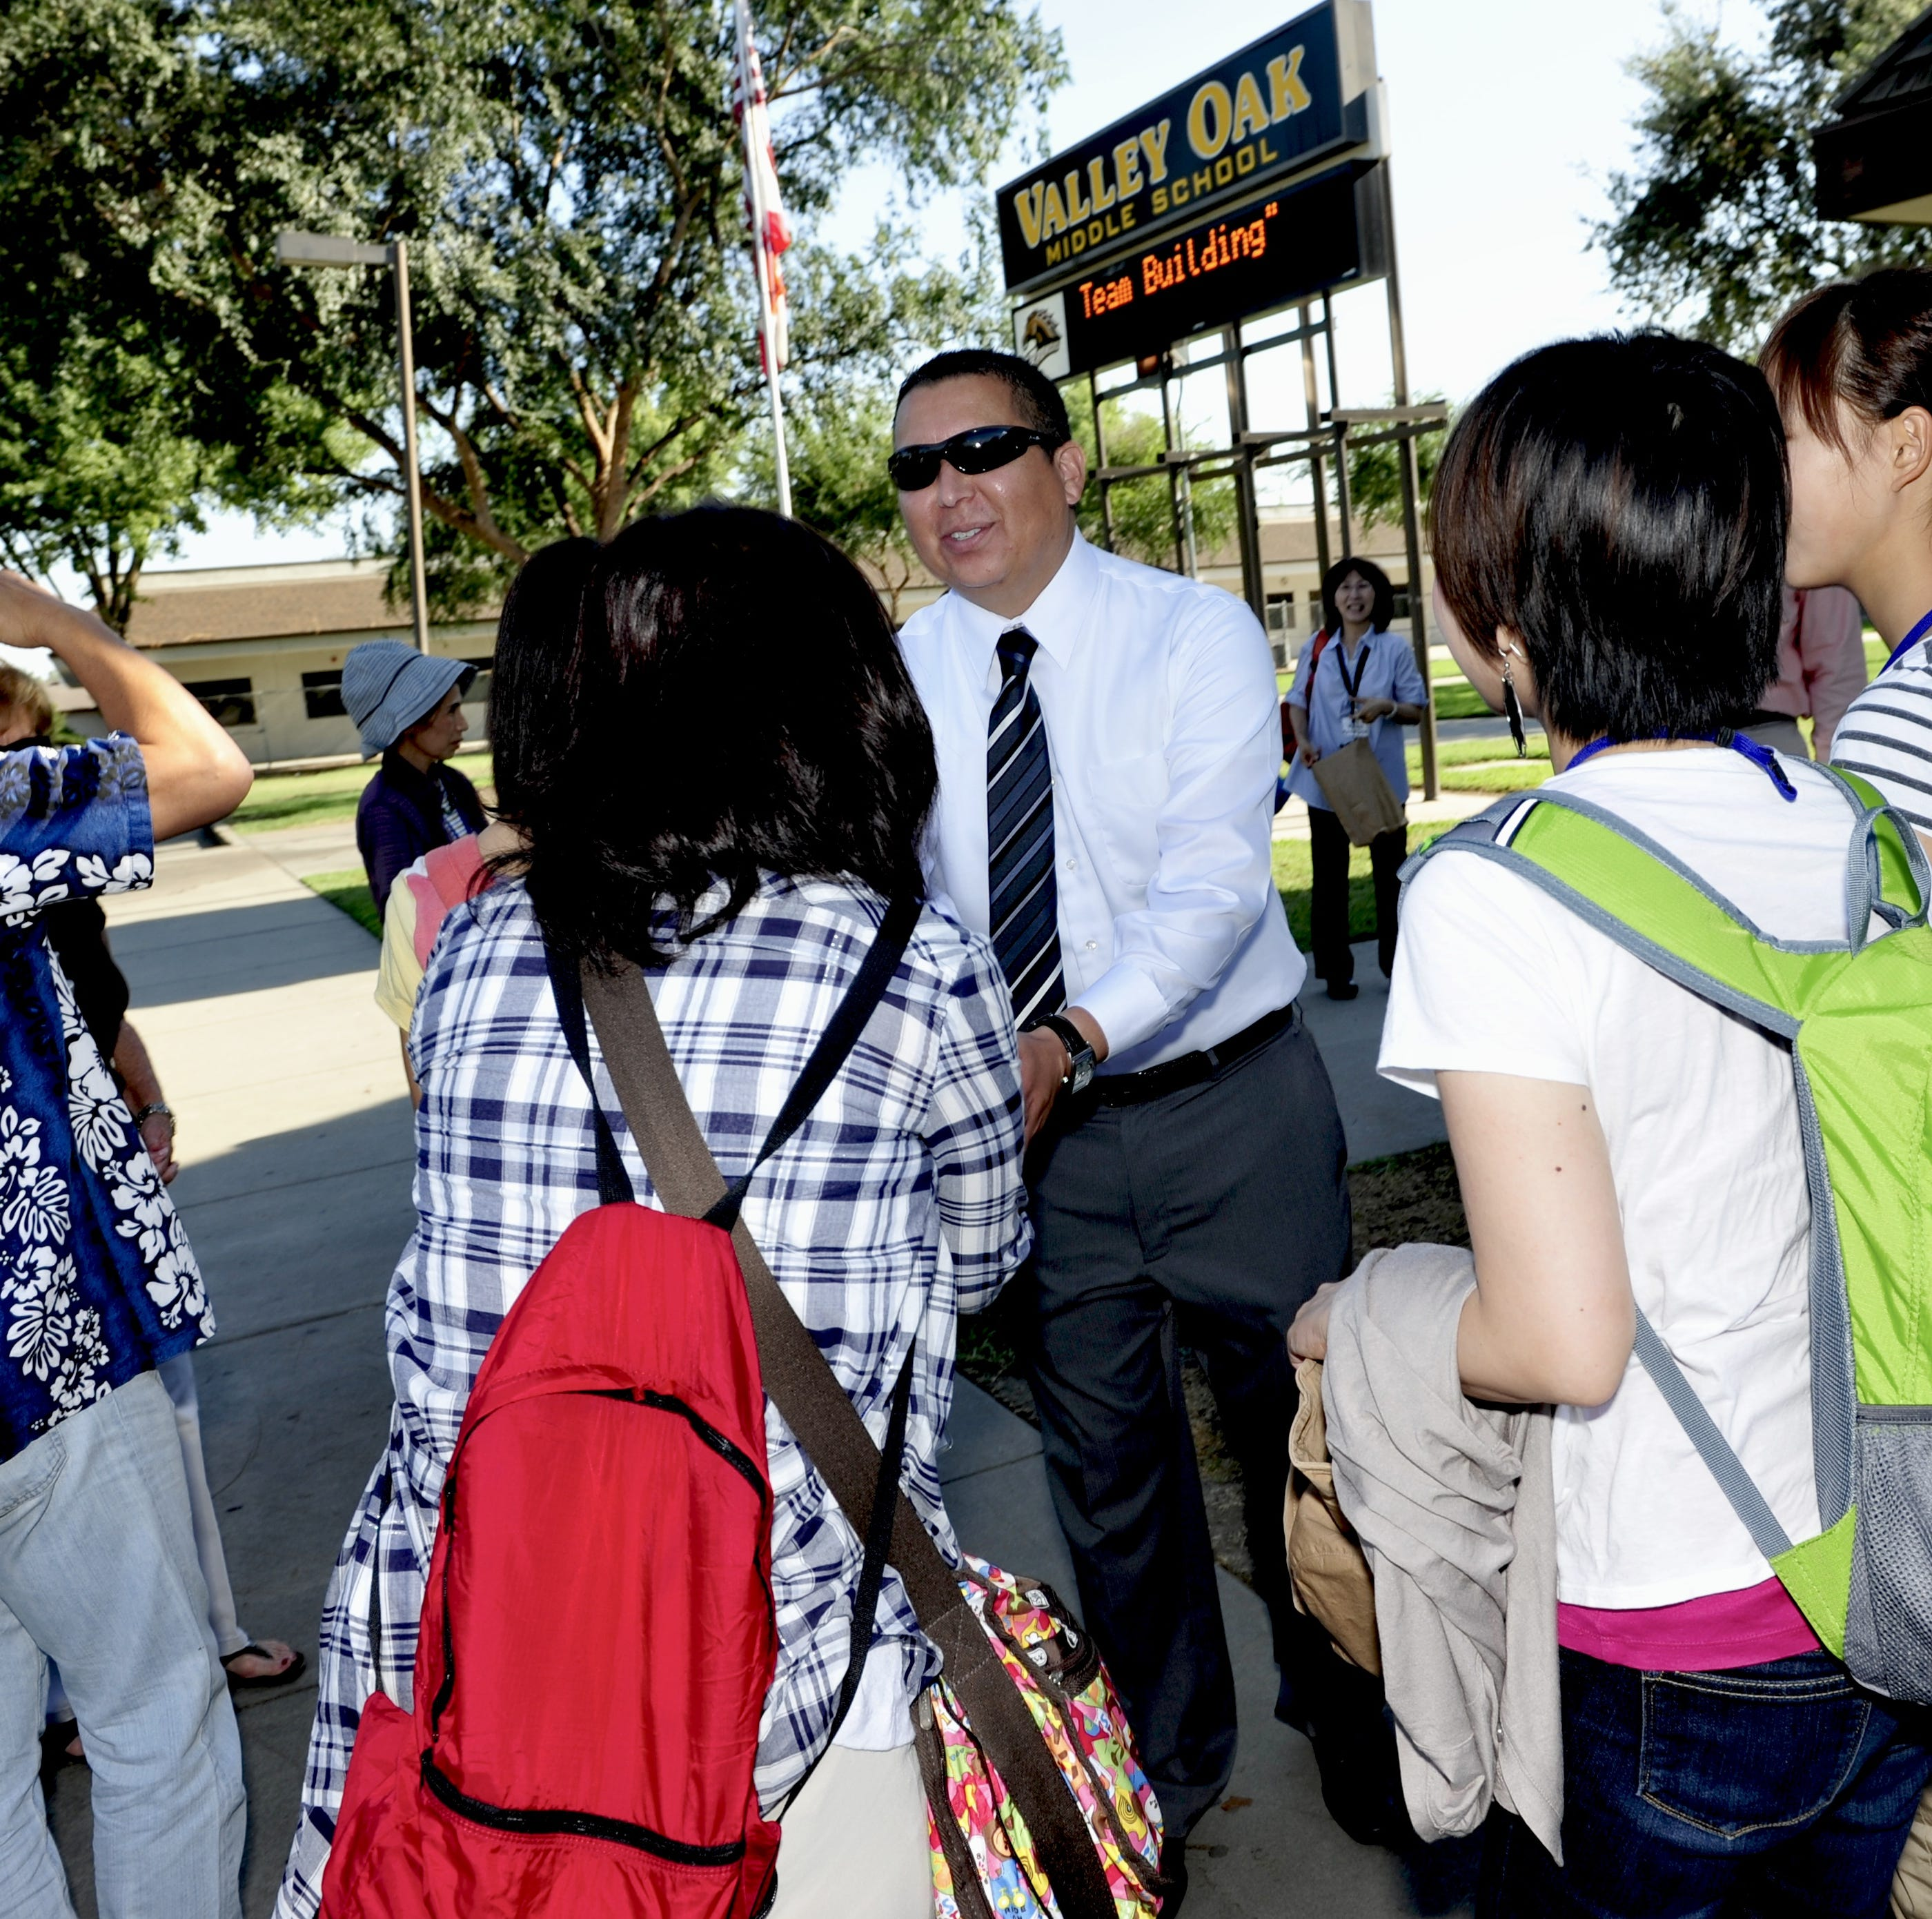 Valley Oak principal resigns, VUSD begins search for new leader